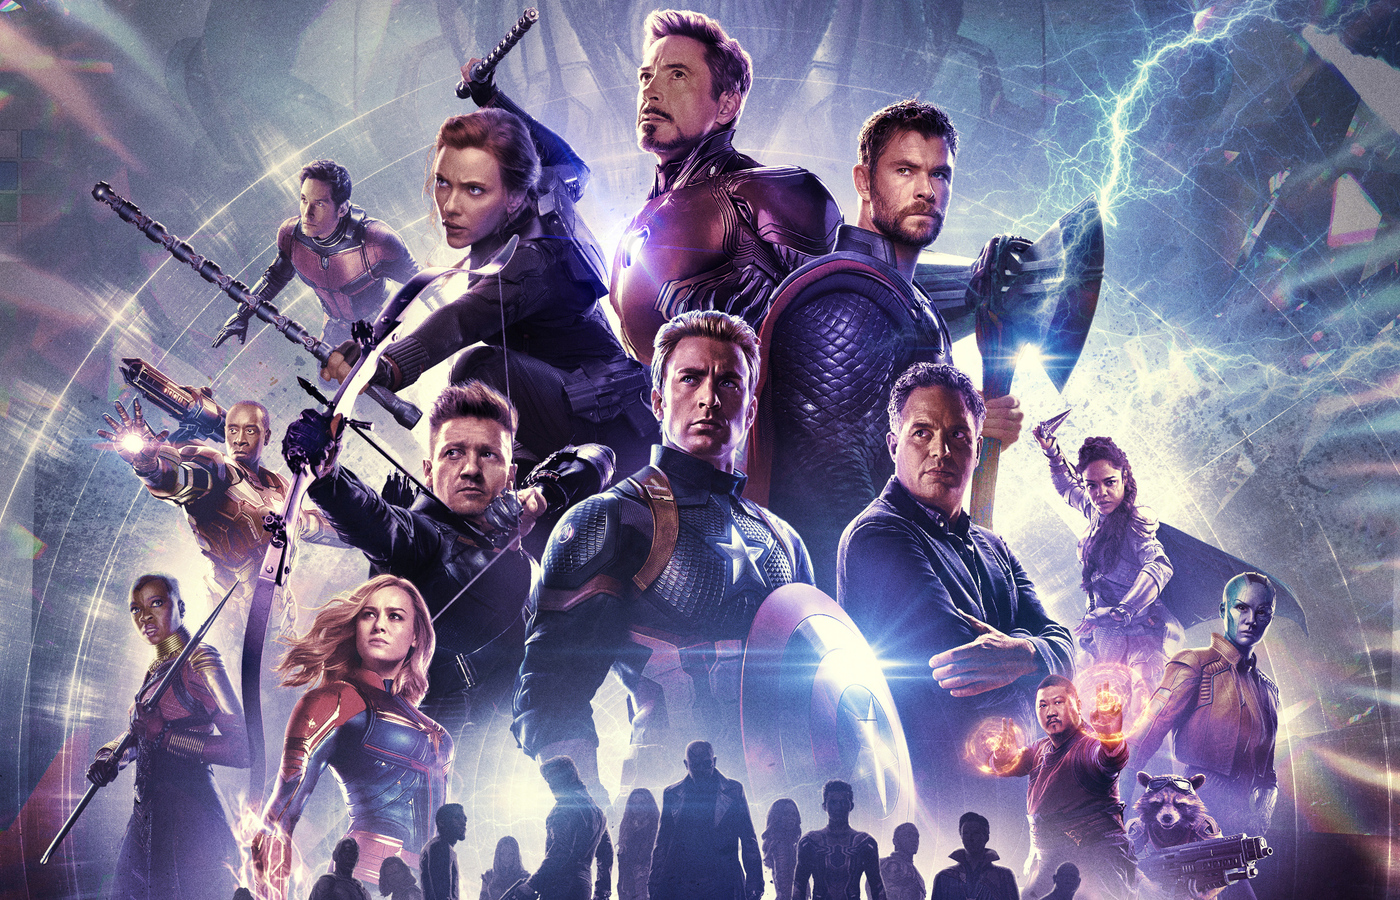 avengers end games poster